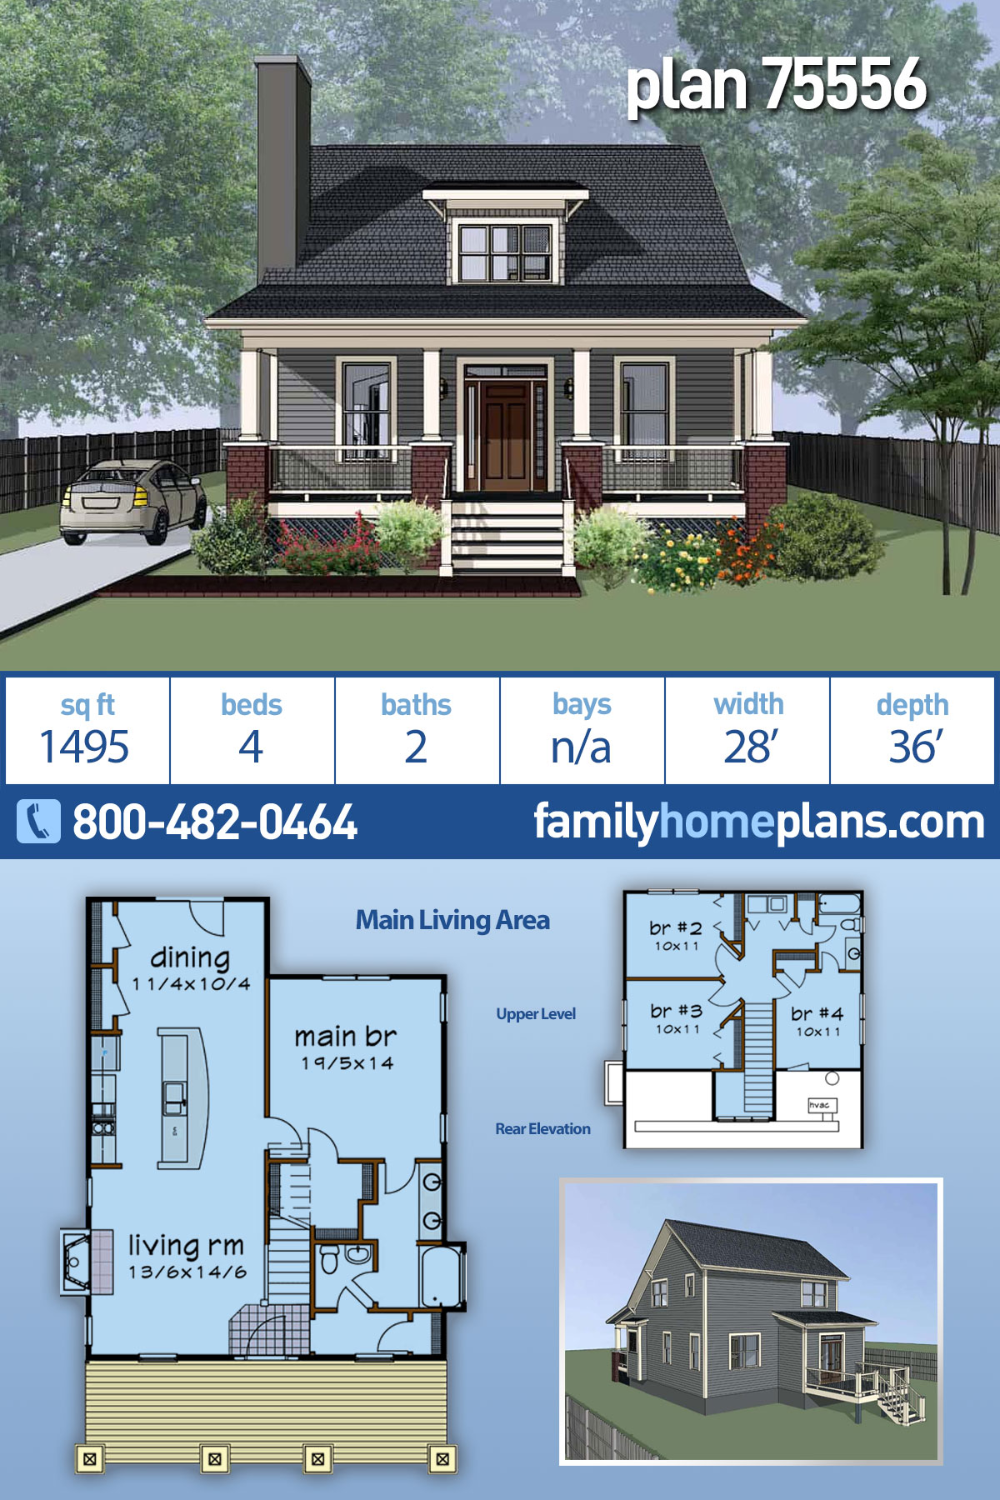 Cottage Style House Plan 75556 With 4 Bed 2 Bath In 2020 Cottage Style House Plans Cottage Style Homes Craftsman Style House Plans